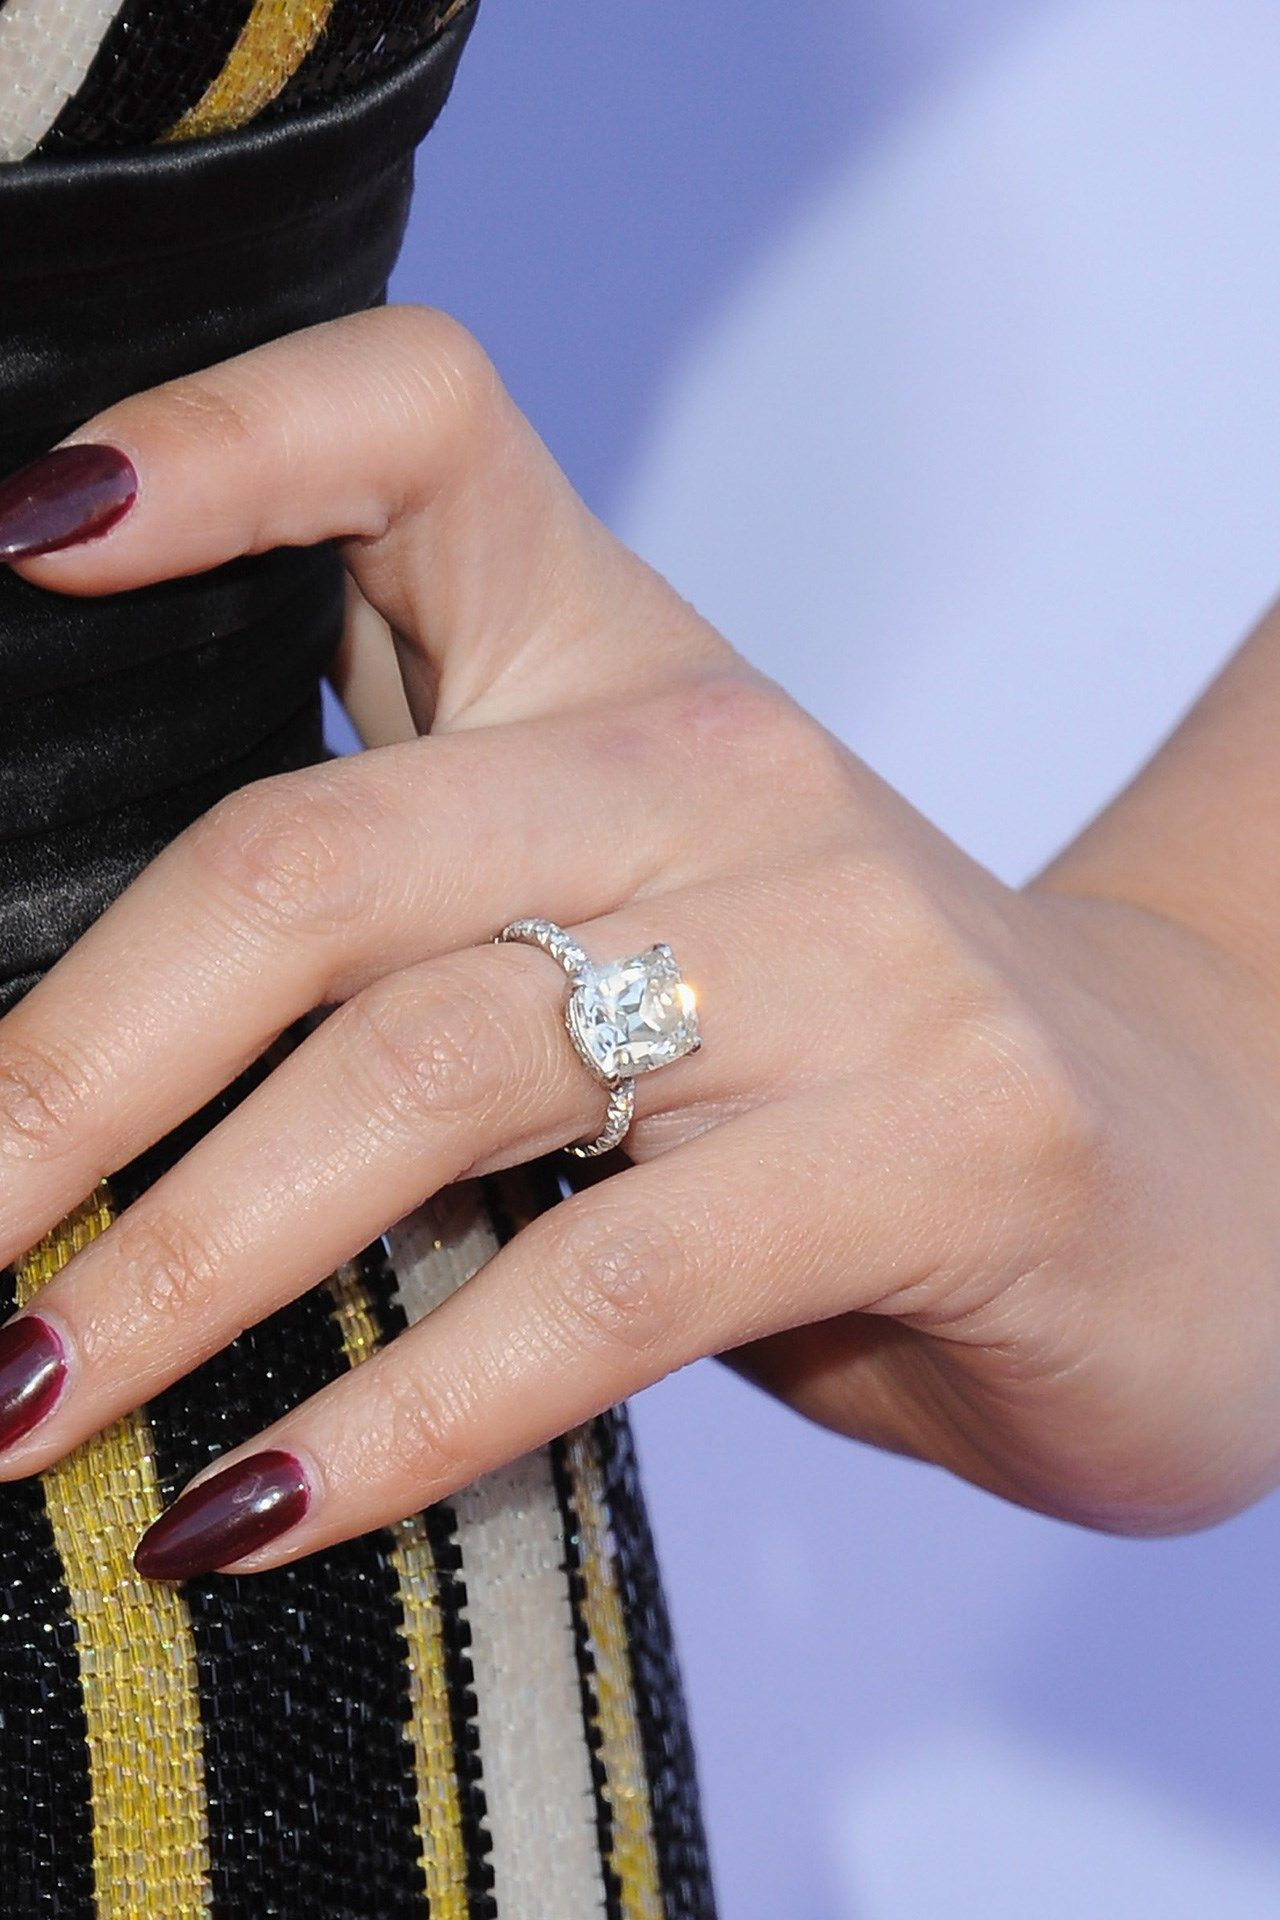 A Definitive Guide To The Most Dazzling Celebrity Engagement Rings